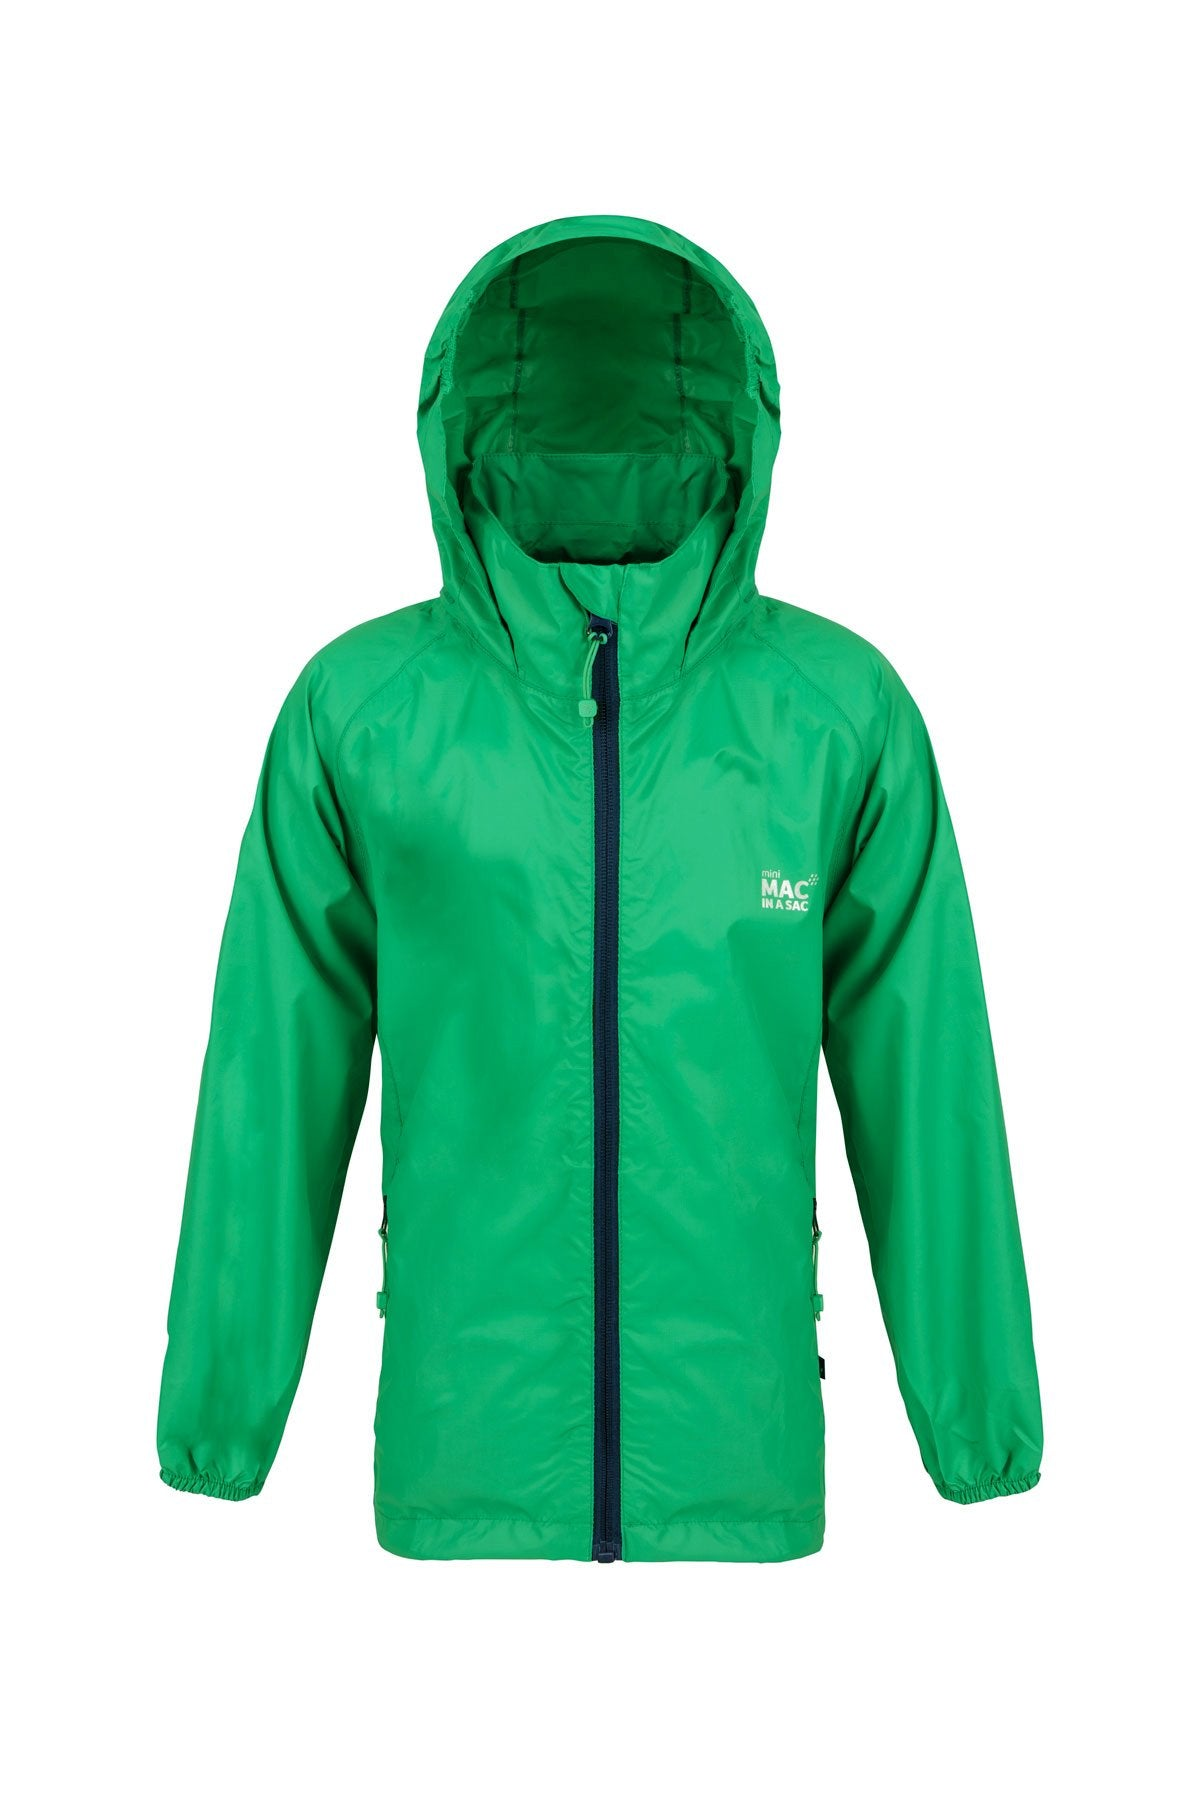 Kids Packable Waterproof Jacket - Green